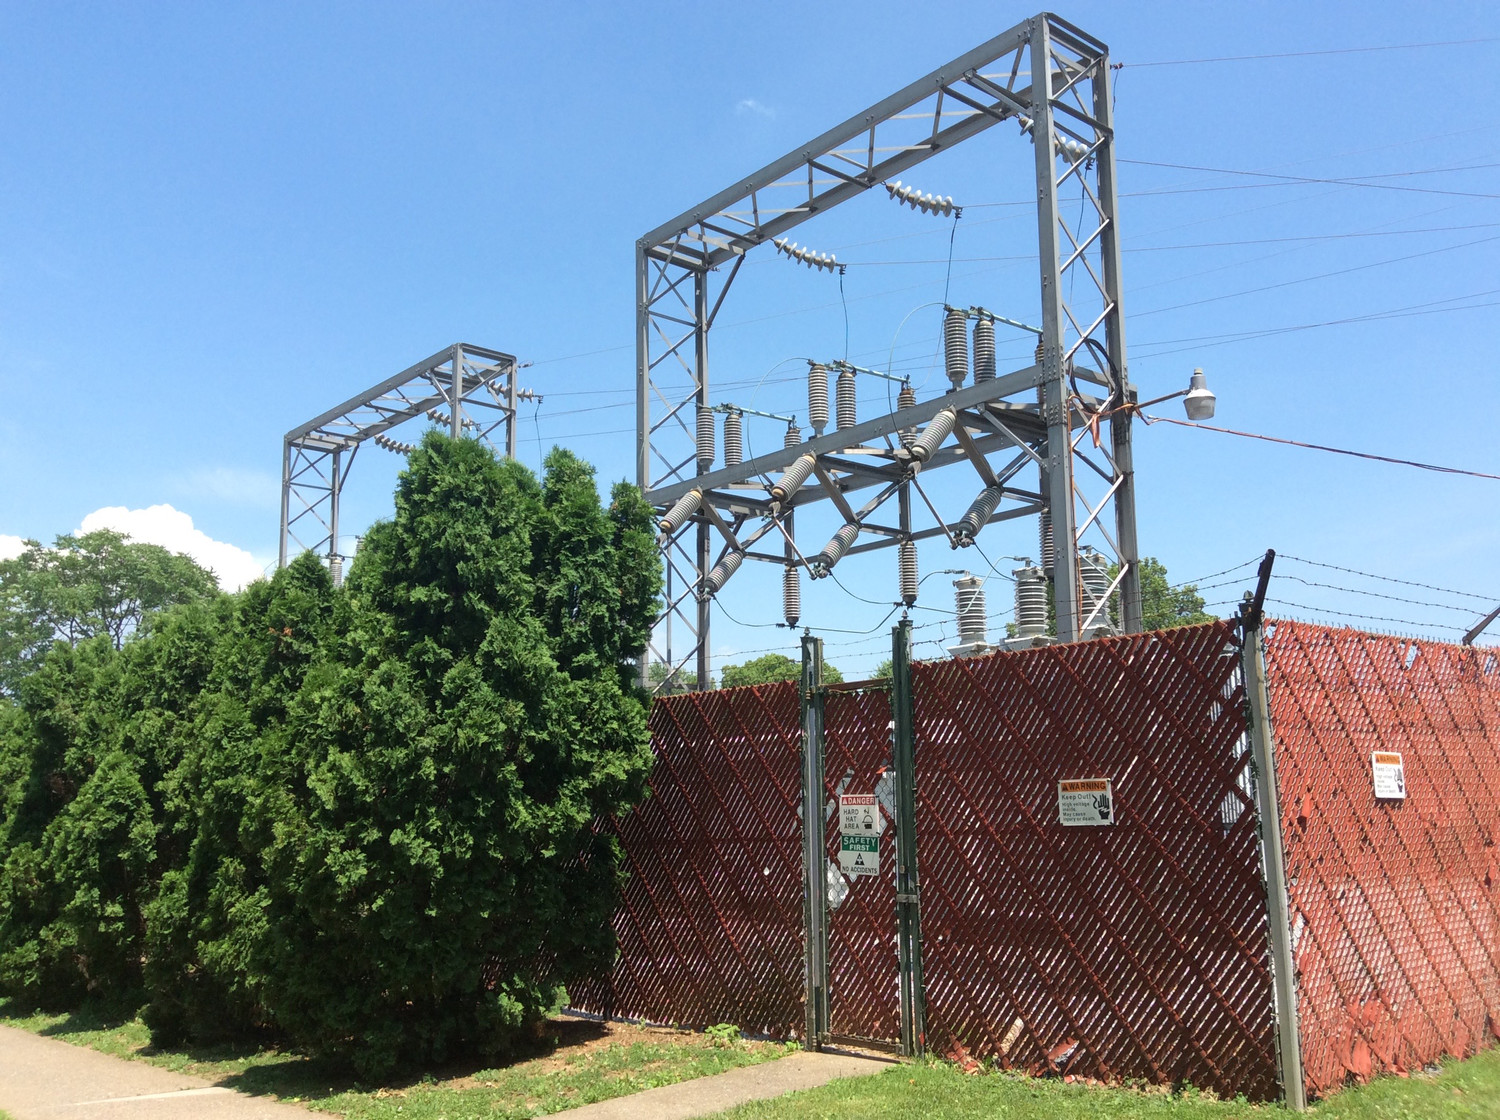 The Capital Improvement Plan recommends the borough upgrade its Spruce Street substation at an estimated cost of $4.9 million. At present the substation cannot handle the electrical load for all of Middletown if something happens to the Mill Street substation. Upgrading Spruce Street is also needed to handle increased capacity that would result from developing Woodland Hills, the study says.